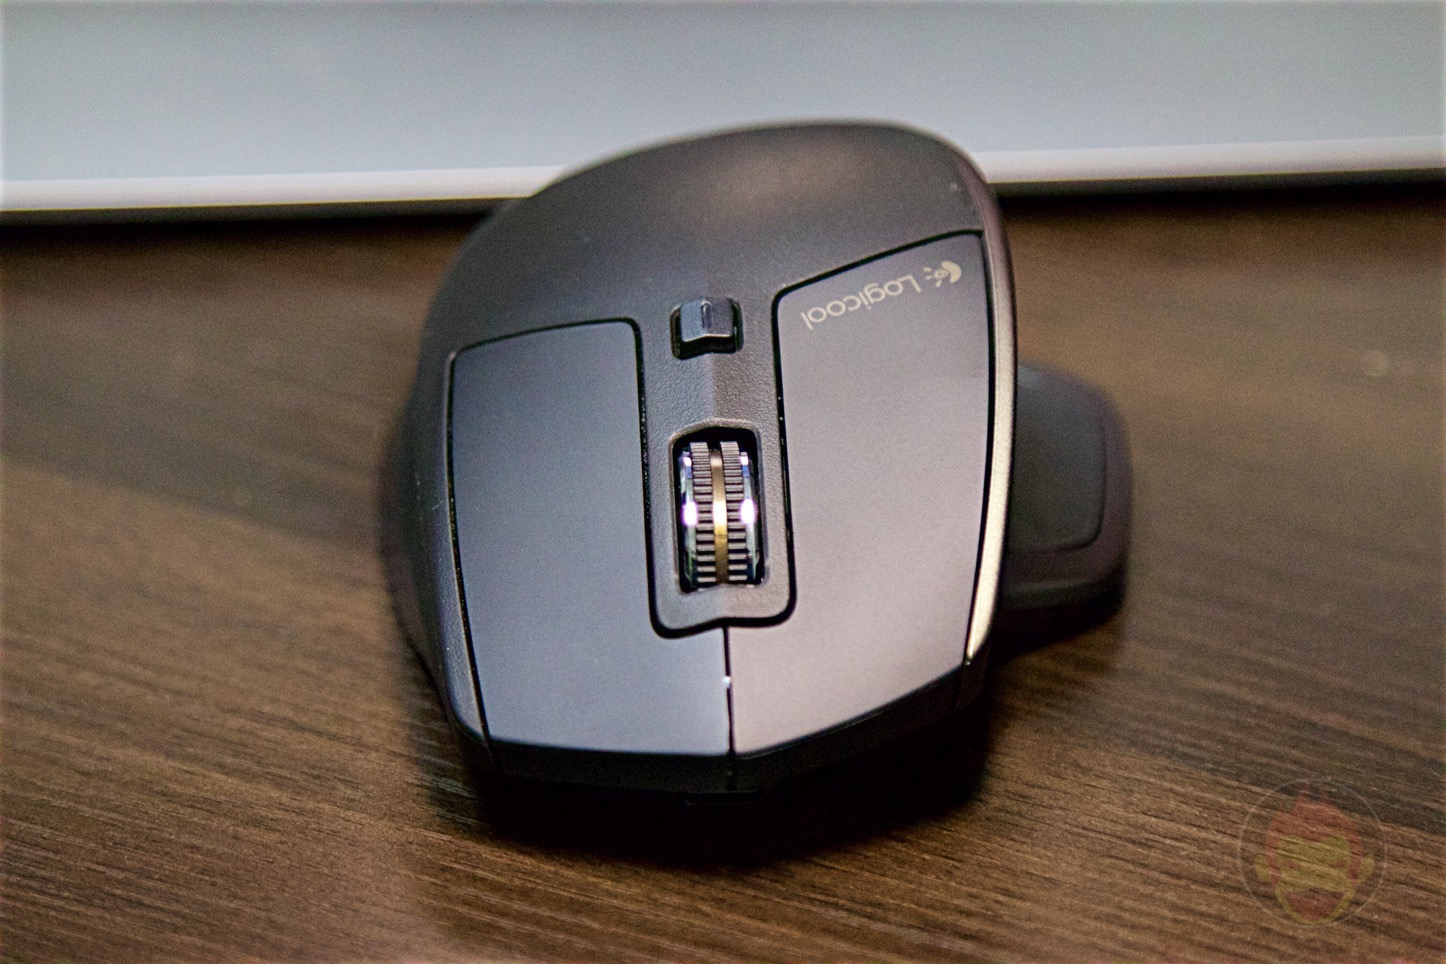 Logicool-MX-Master-Mouse-04.jpg